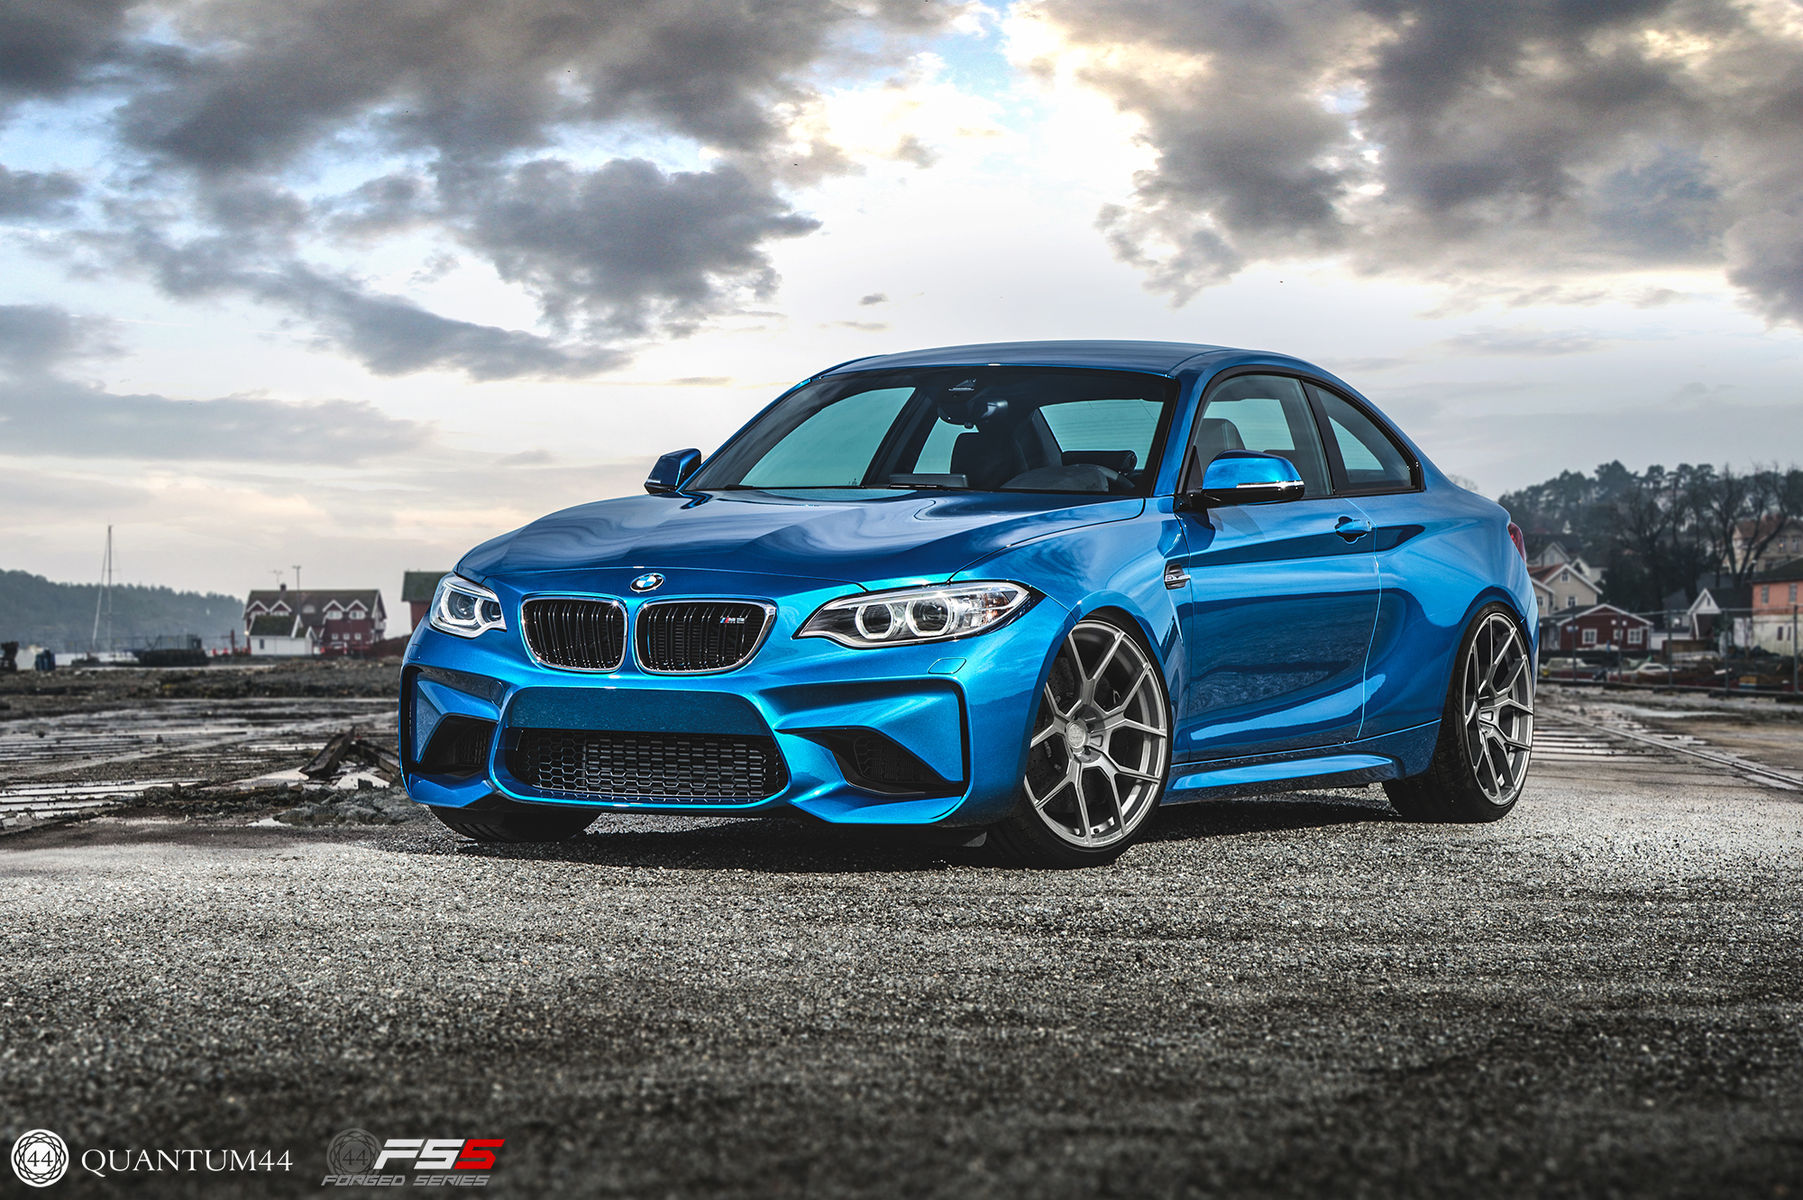 BMW M2 | BMW M2 Coupe - Quantum44 FS5 Forged Wheels